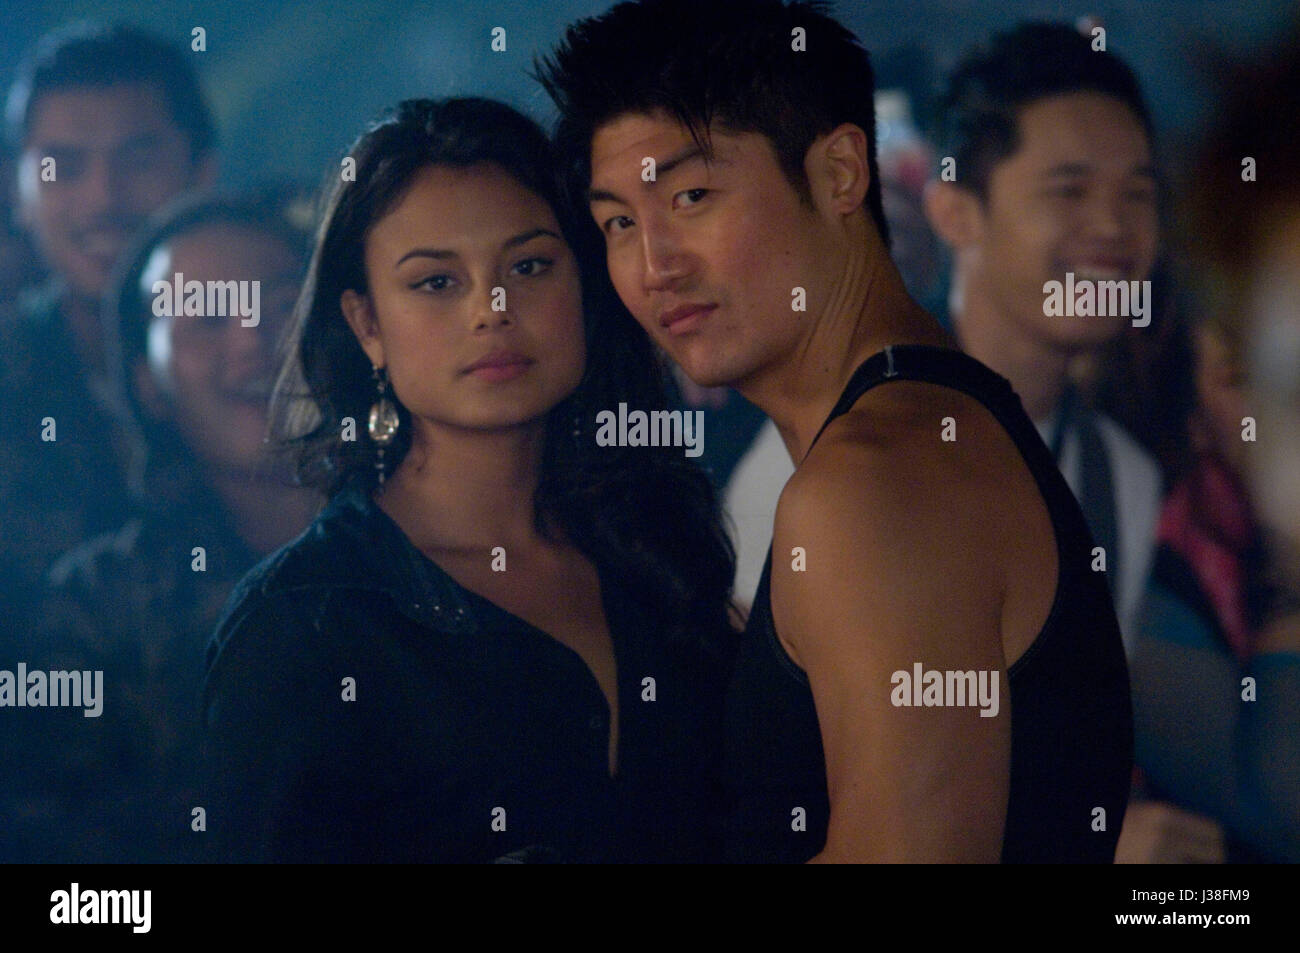 348a9cac42f THE FAST AND THE FURIOUS: TOKYO DRIFT (2006) NATHALIE KELLEY BRIAN TEE  JUSTIN